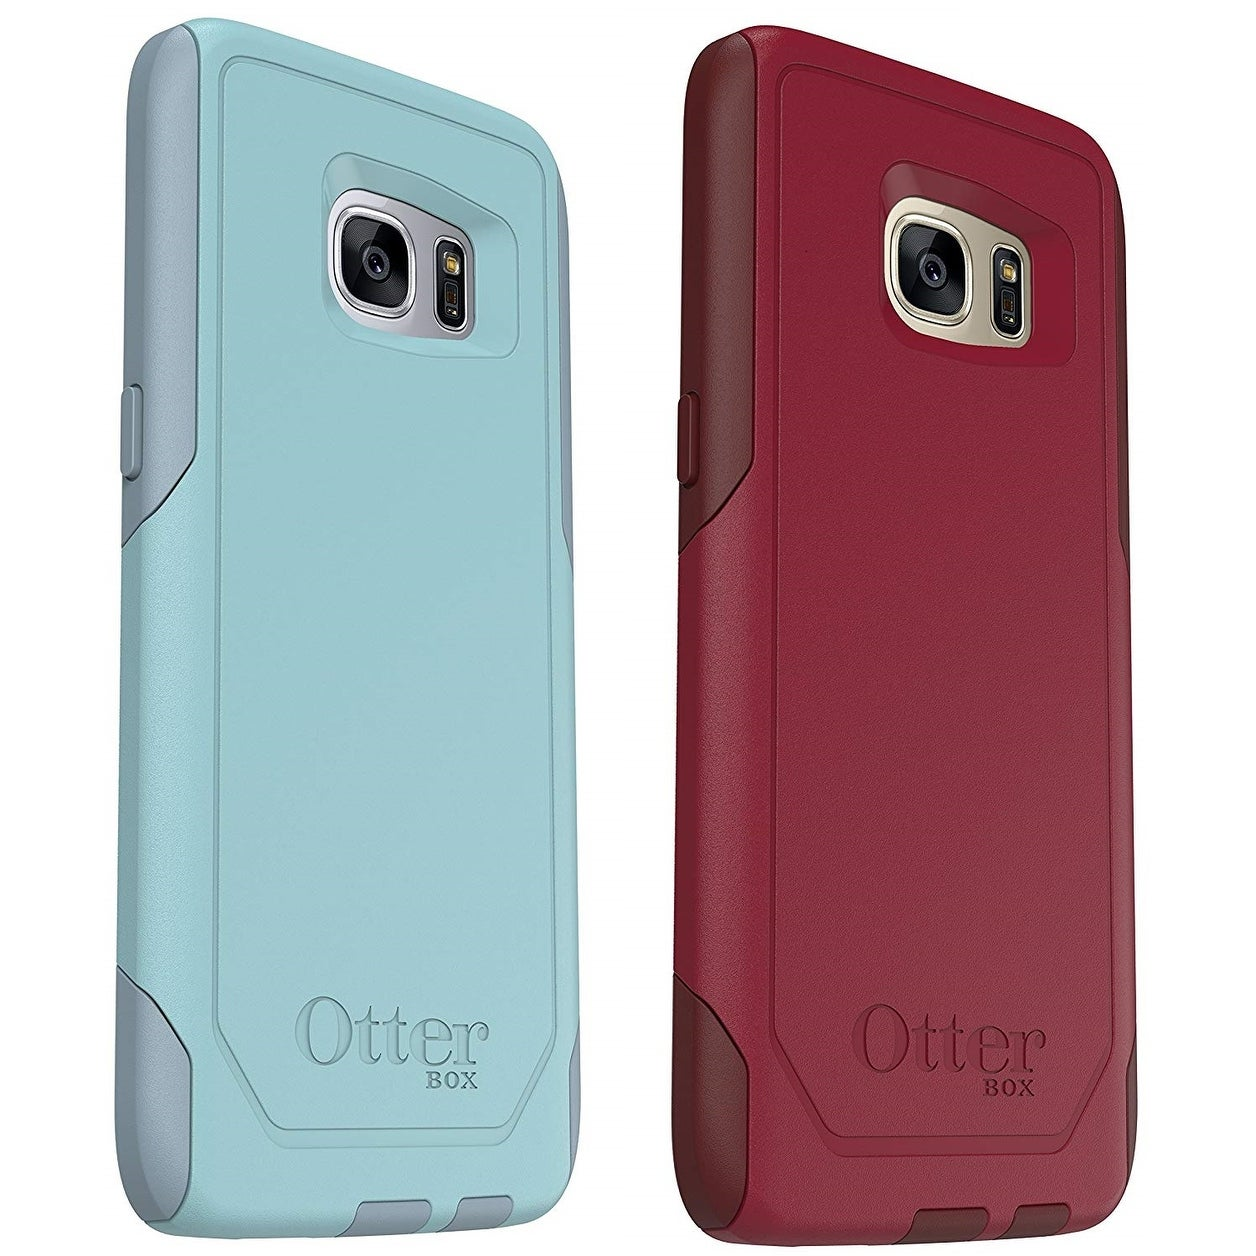 reputable site 61218 60b3d OtterBox Commuter Series Case - 2 Layer Protection, Compact for Samsung  Galaxy S7 Edge (NOT S7)